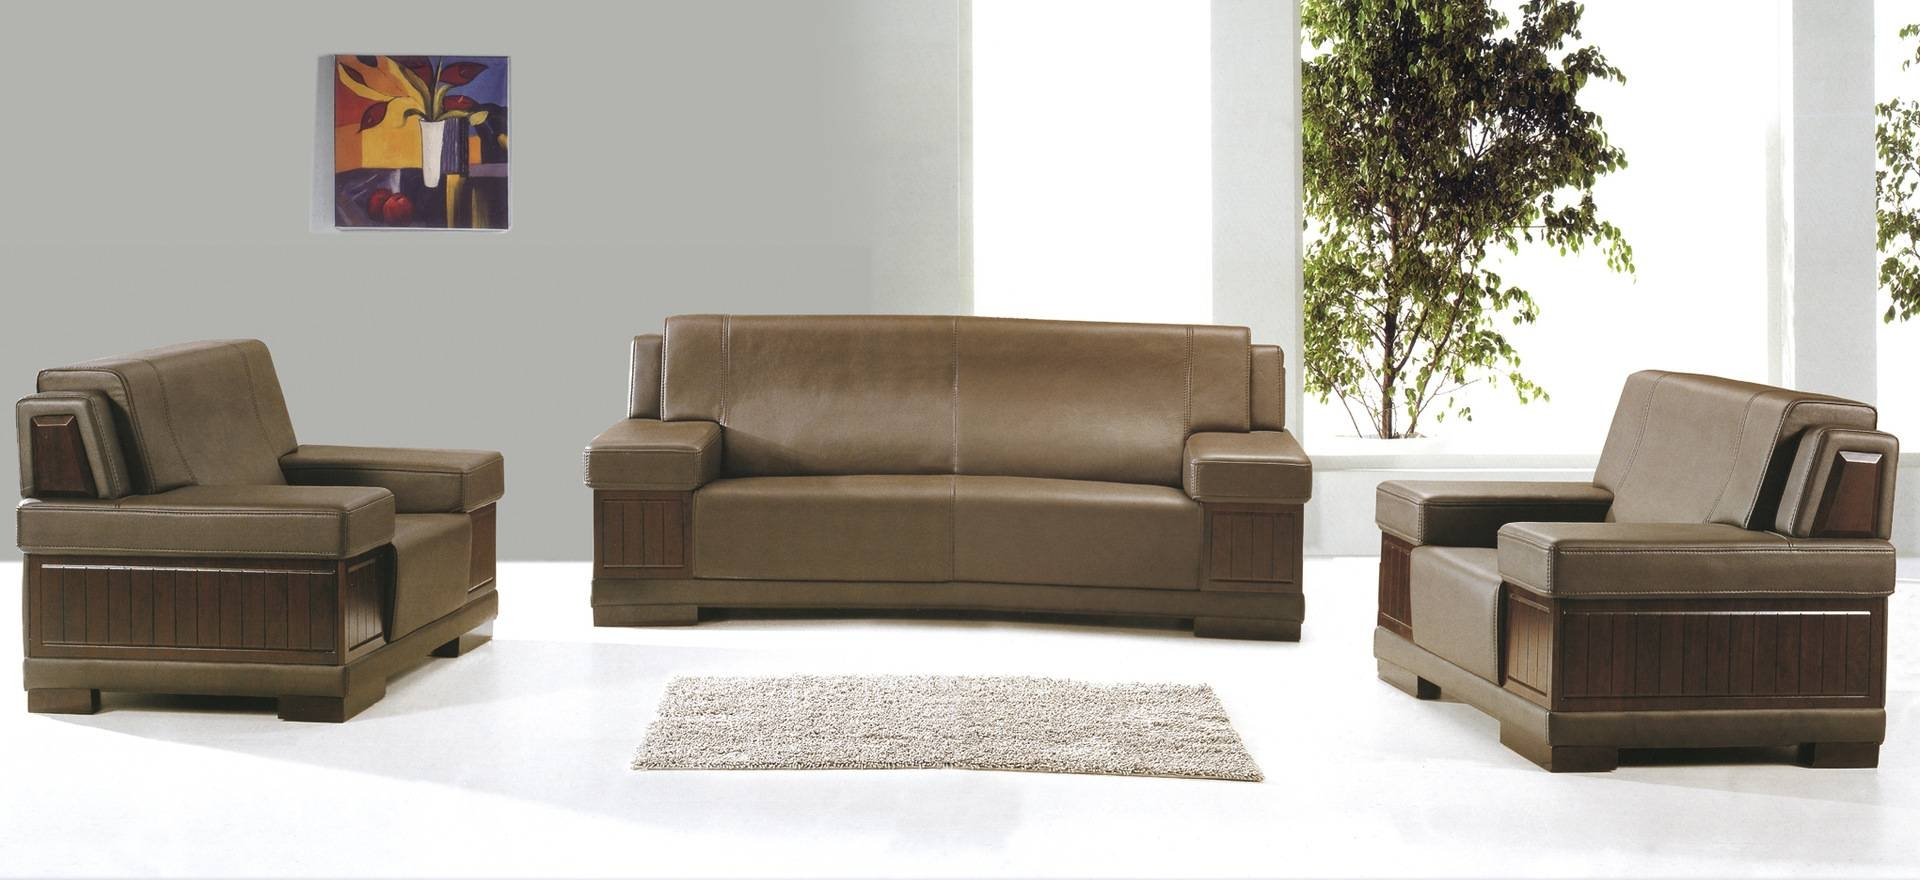 Origin Deals Modern Pu Leather Office Sofa Wealthy High-End Office pertaining to High End Sofa (Image 23 of 30)